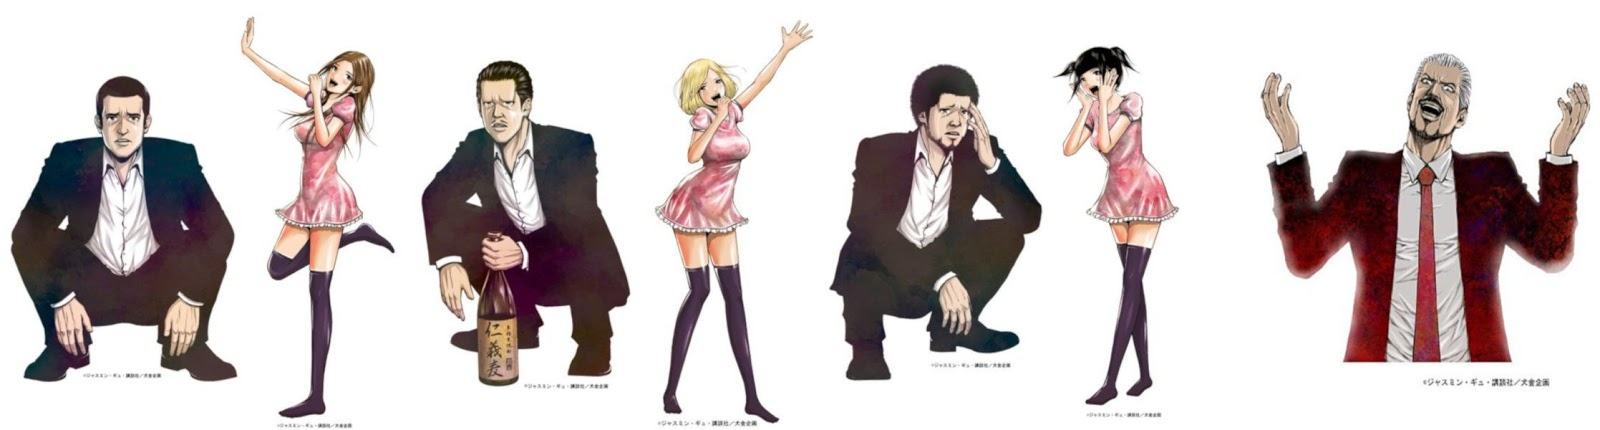 Back Street Girls anime personajes